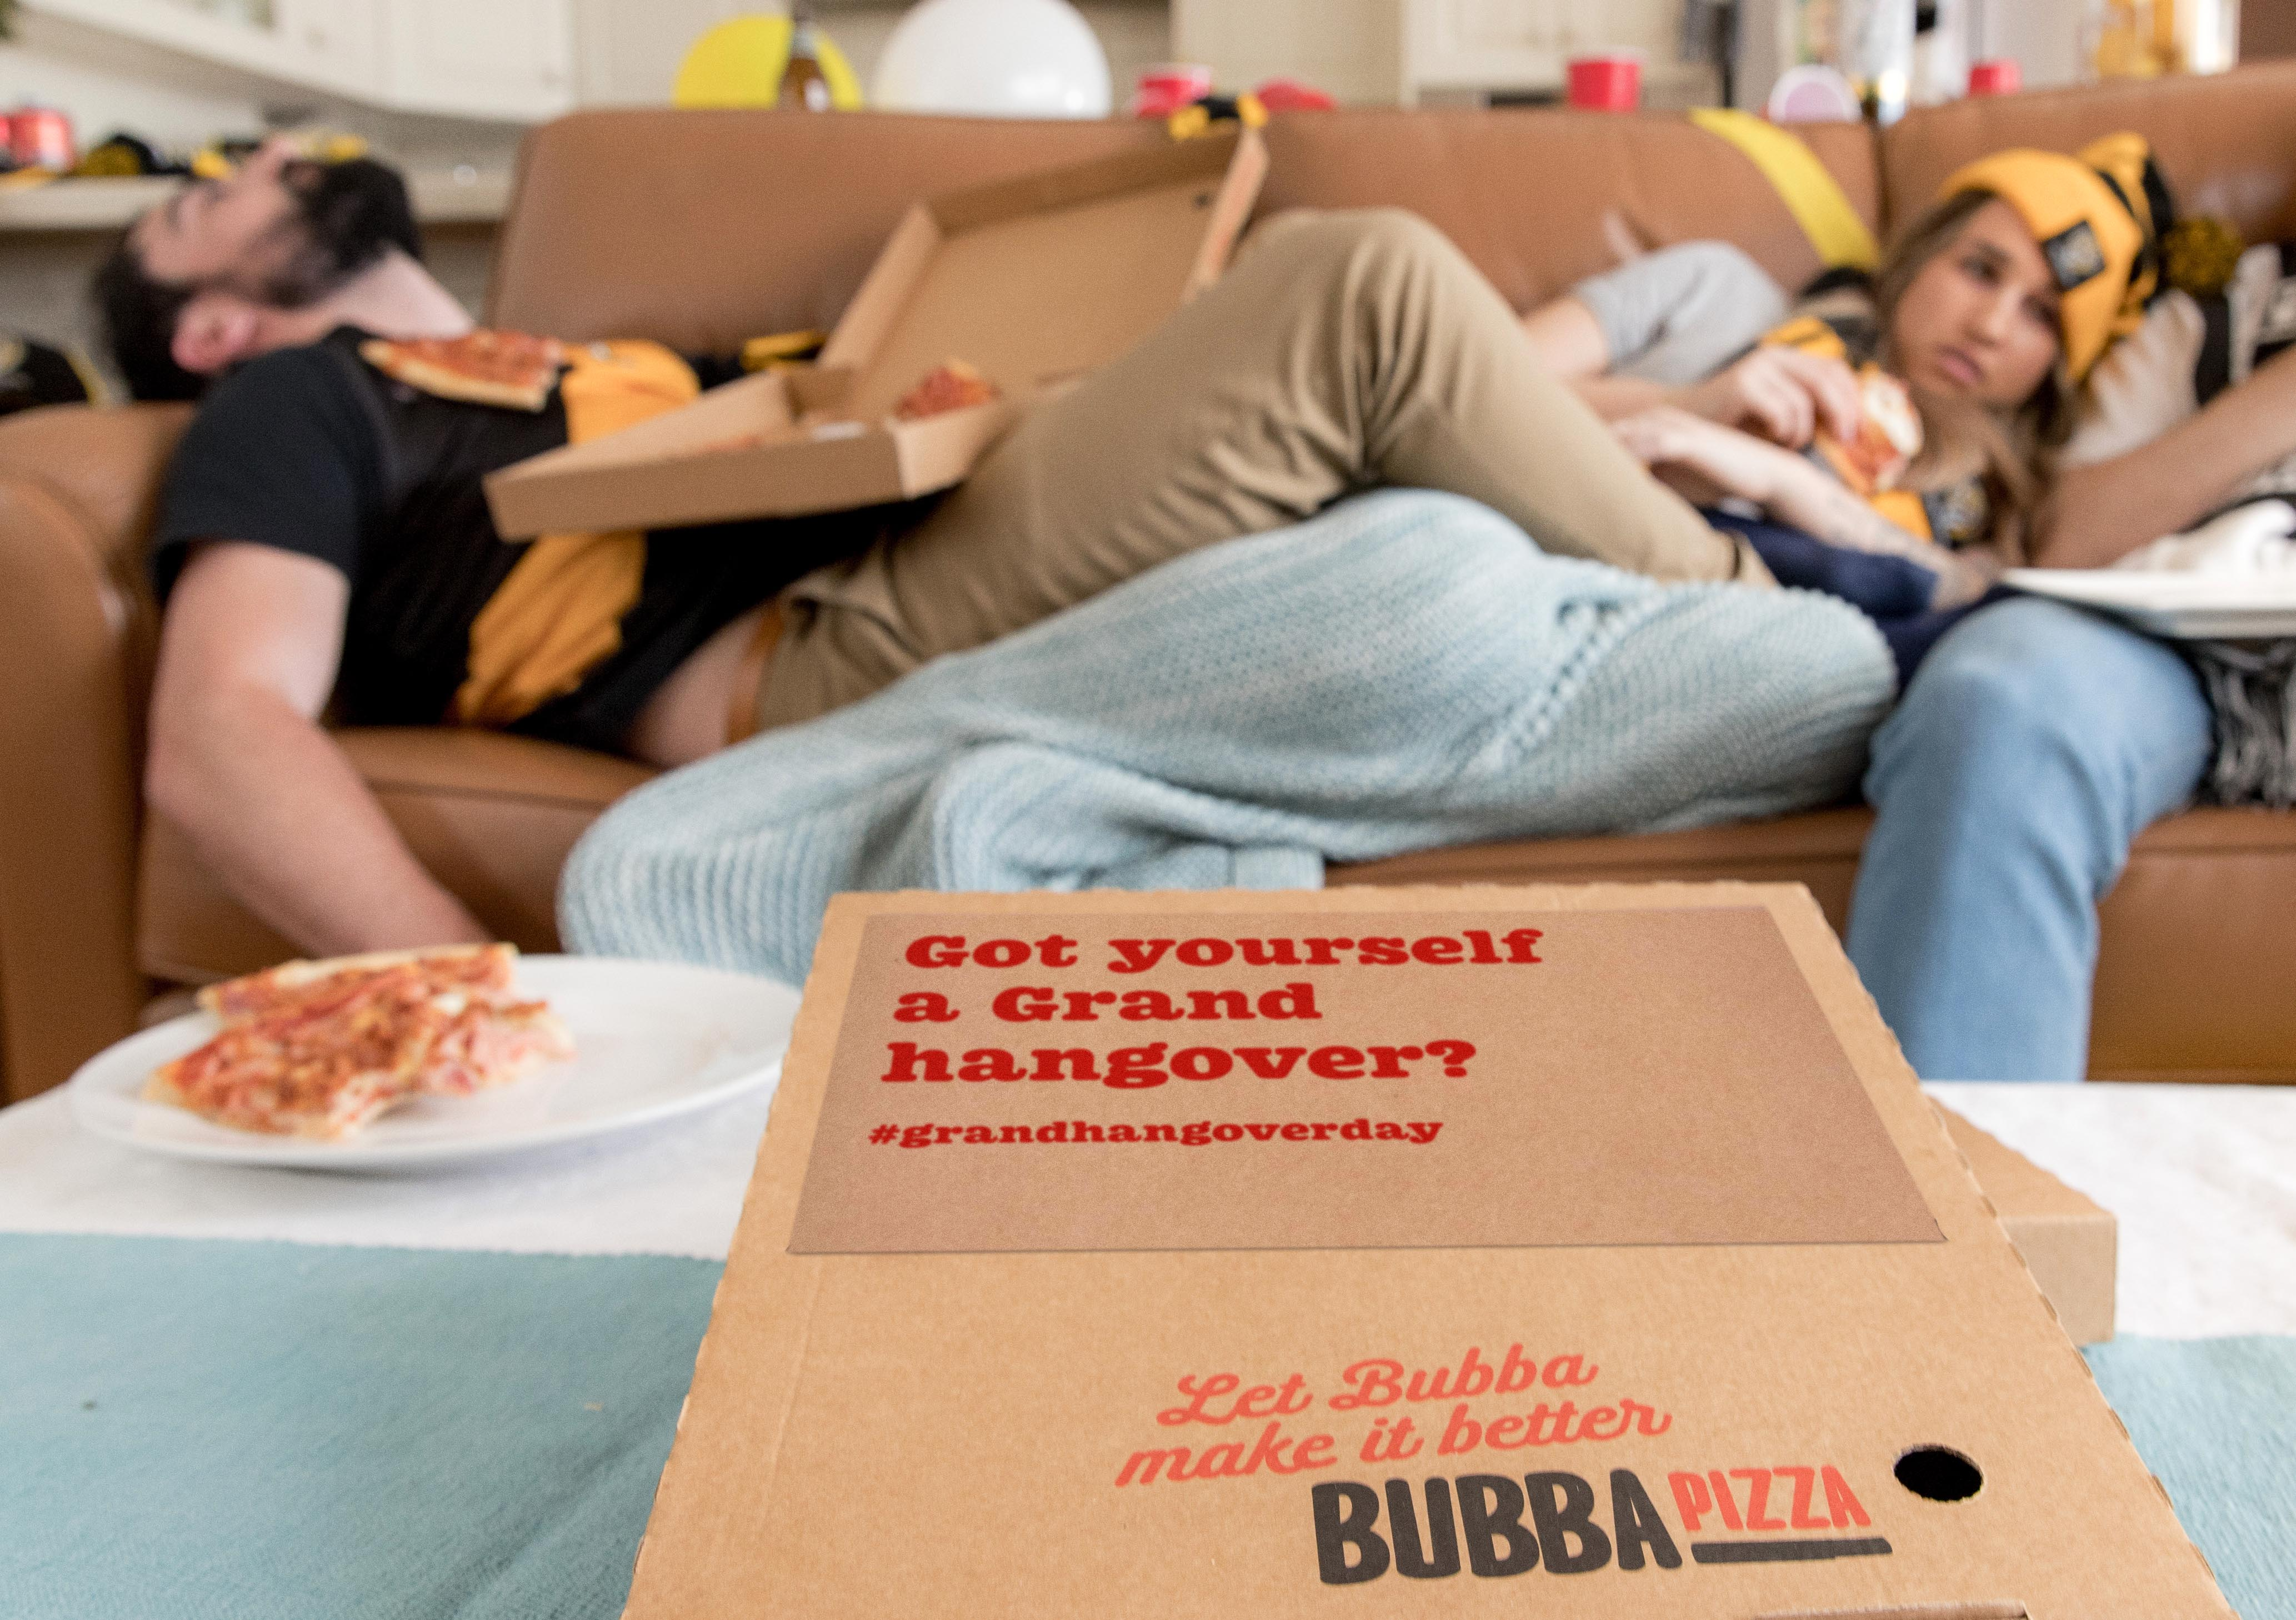 Bubba Pizza makes Grand Final hangovers better in newly launched campaign via By All Means